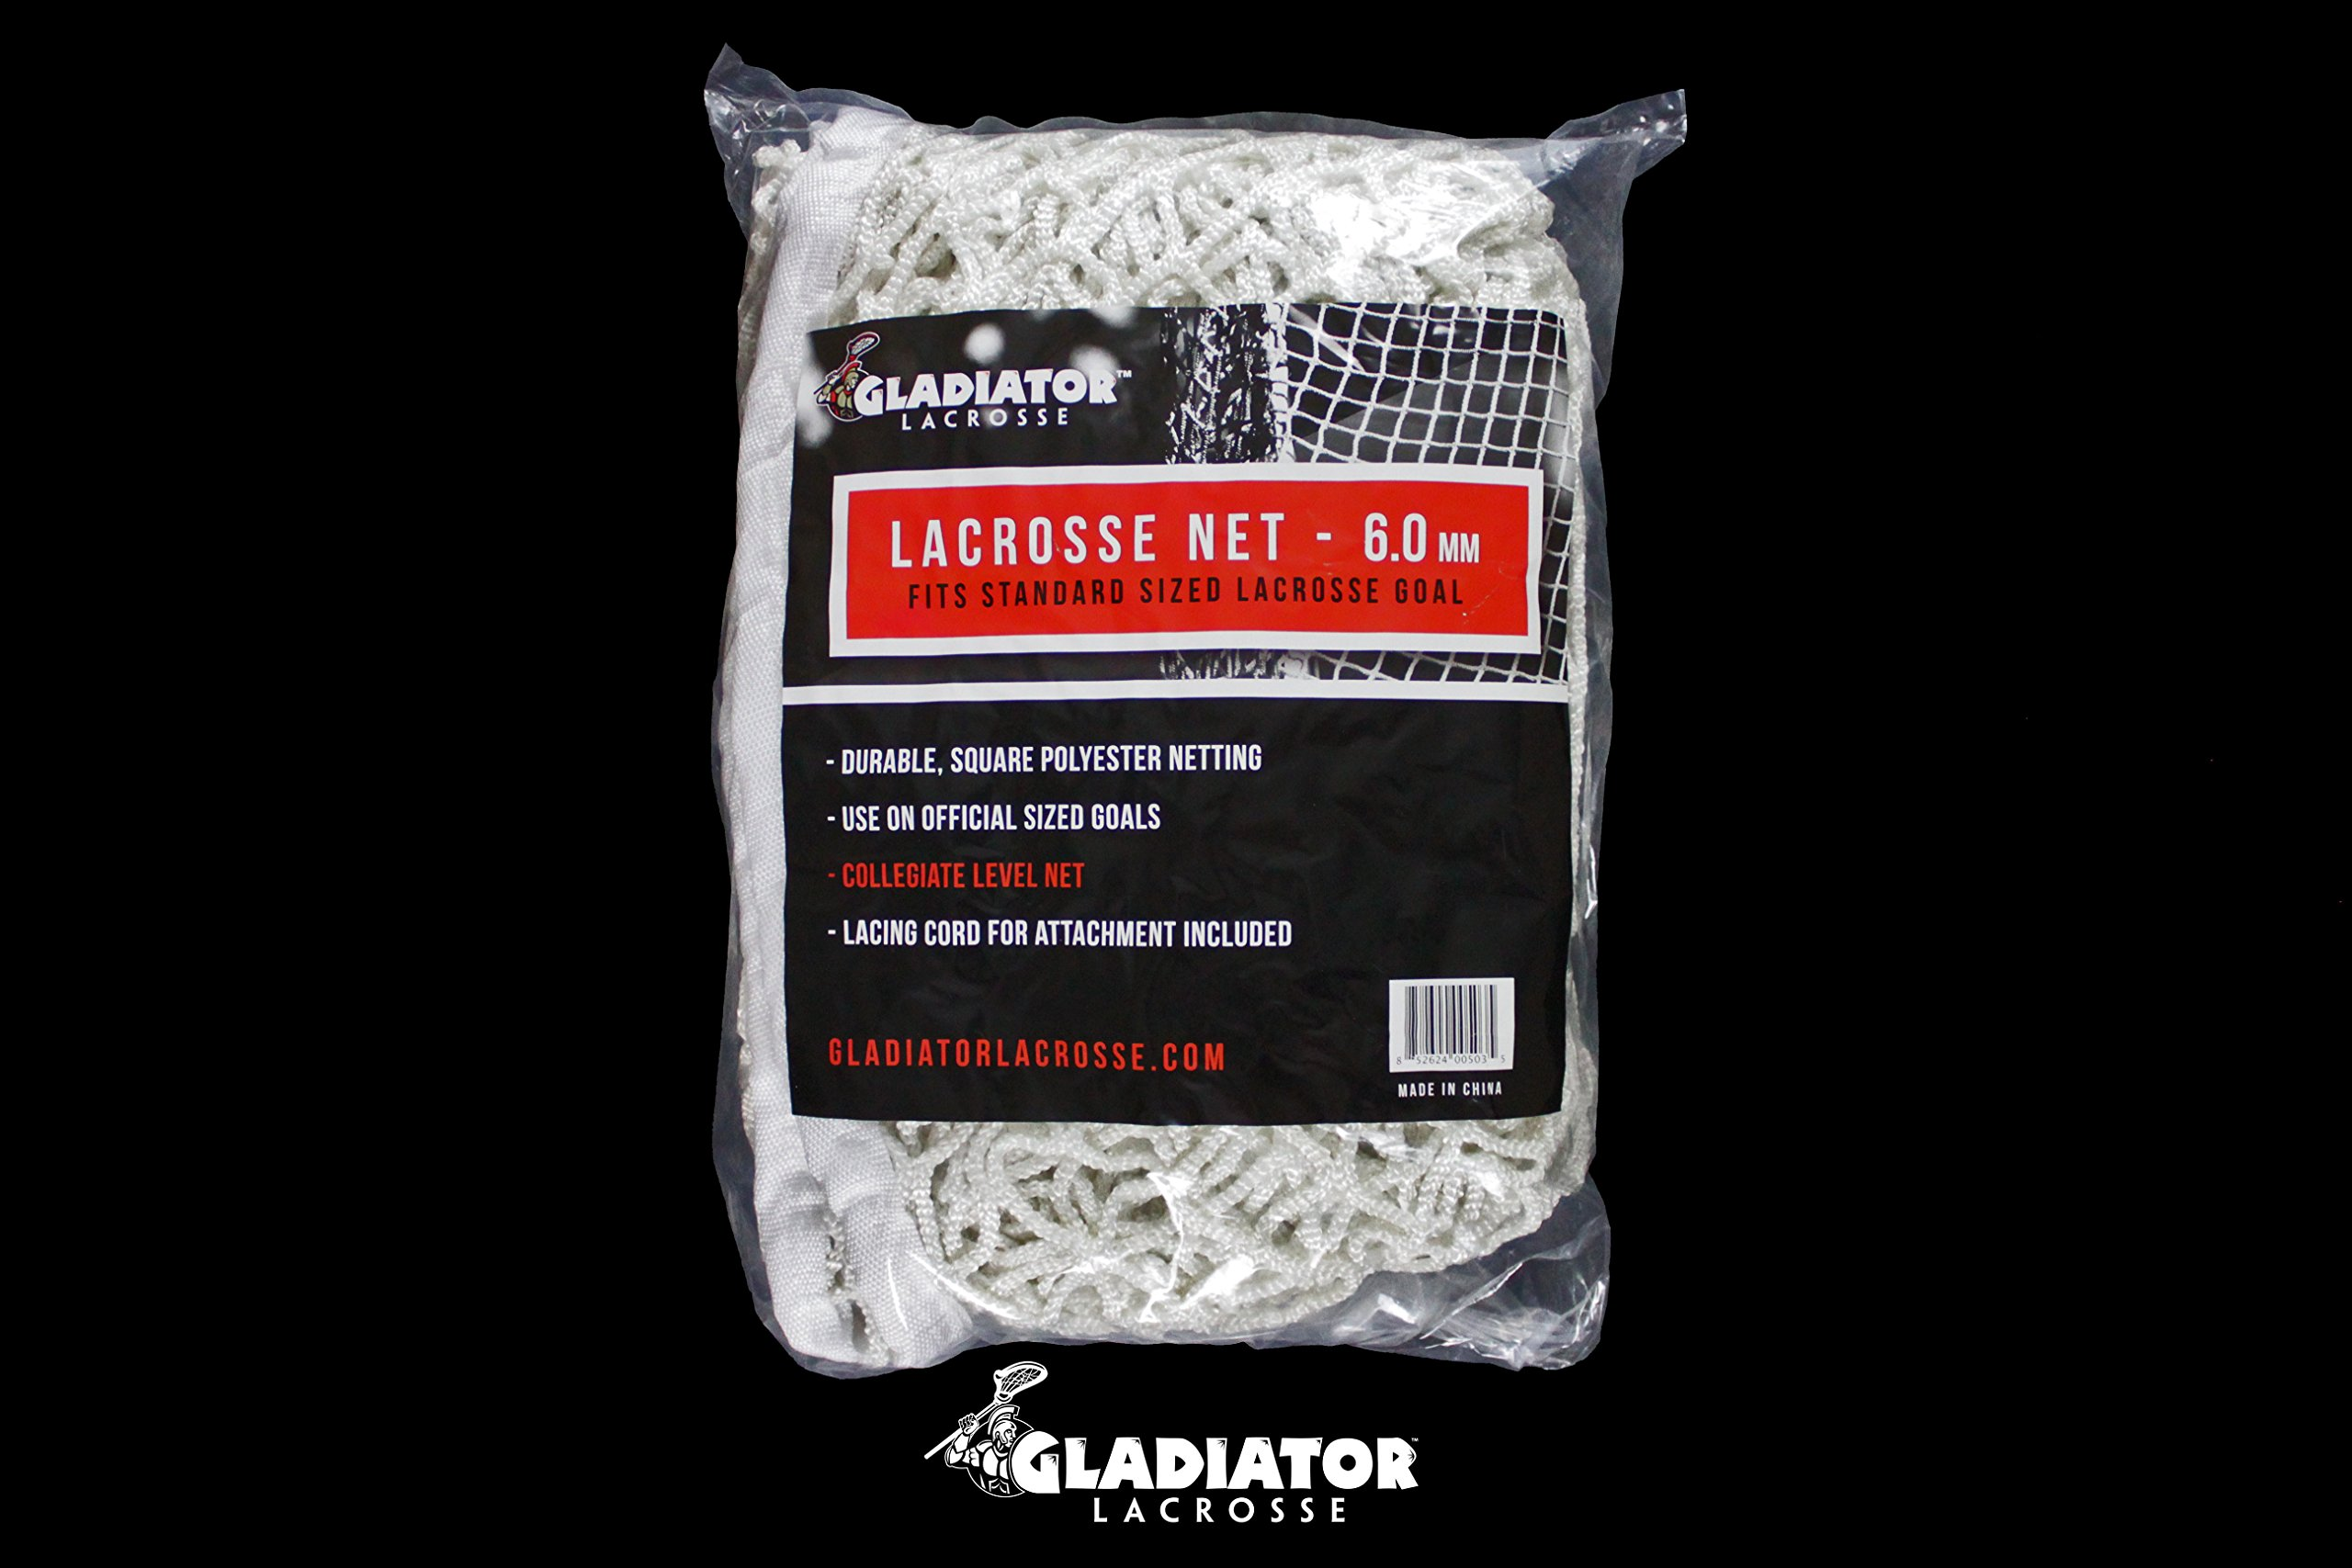 6mm Heavy Duty Replacement Lacrosse Goal Net 6'x6' for Backyard Goals - Gladiator Collegiate Level by Gladiator Lacrosse